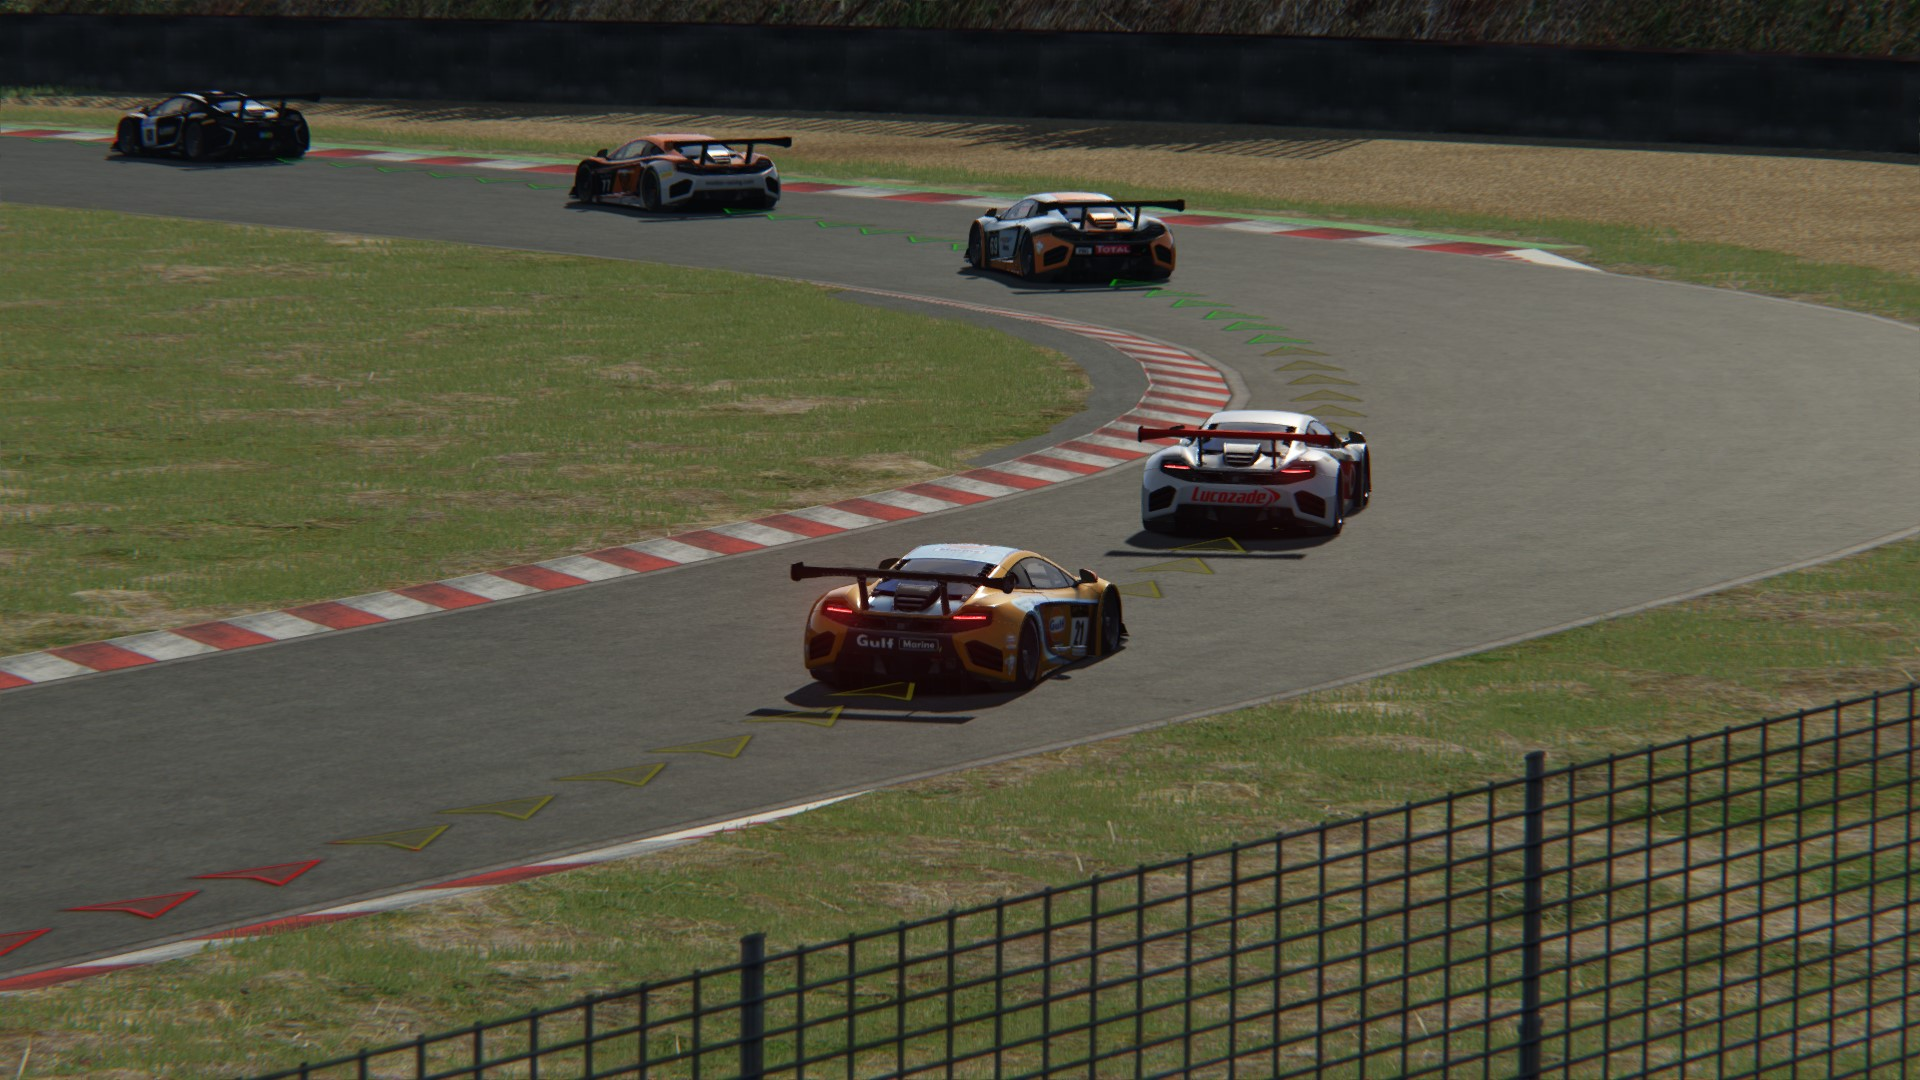 Screenshot_mclaren_mp412c_gt3_sportsland_sugo_7-4-116-10-20-44.jpg